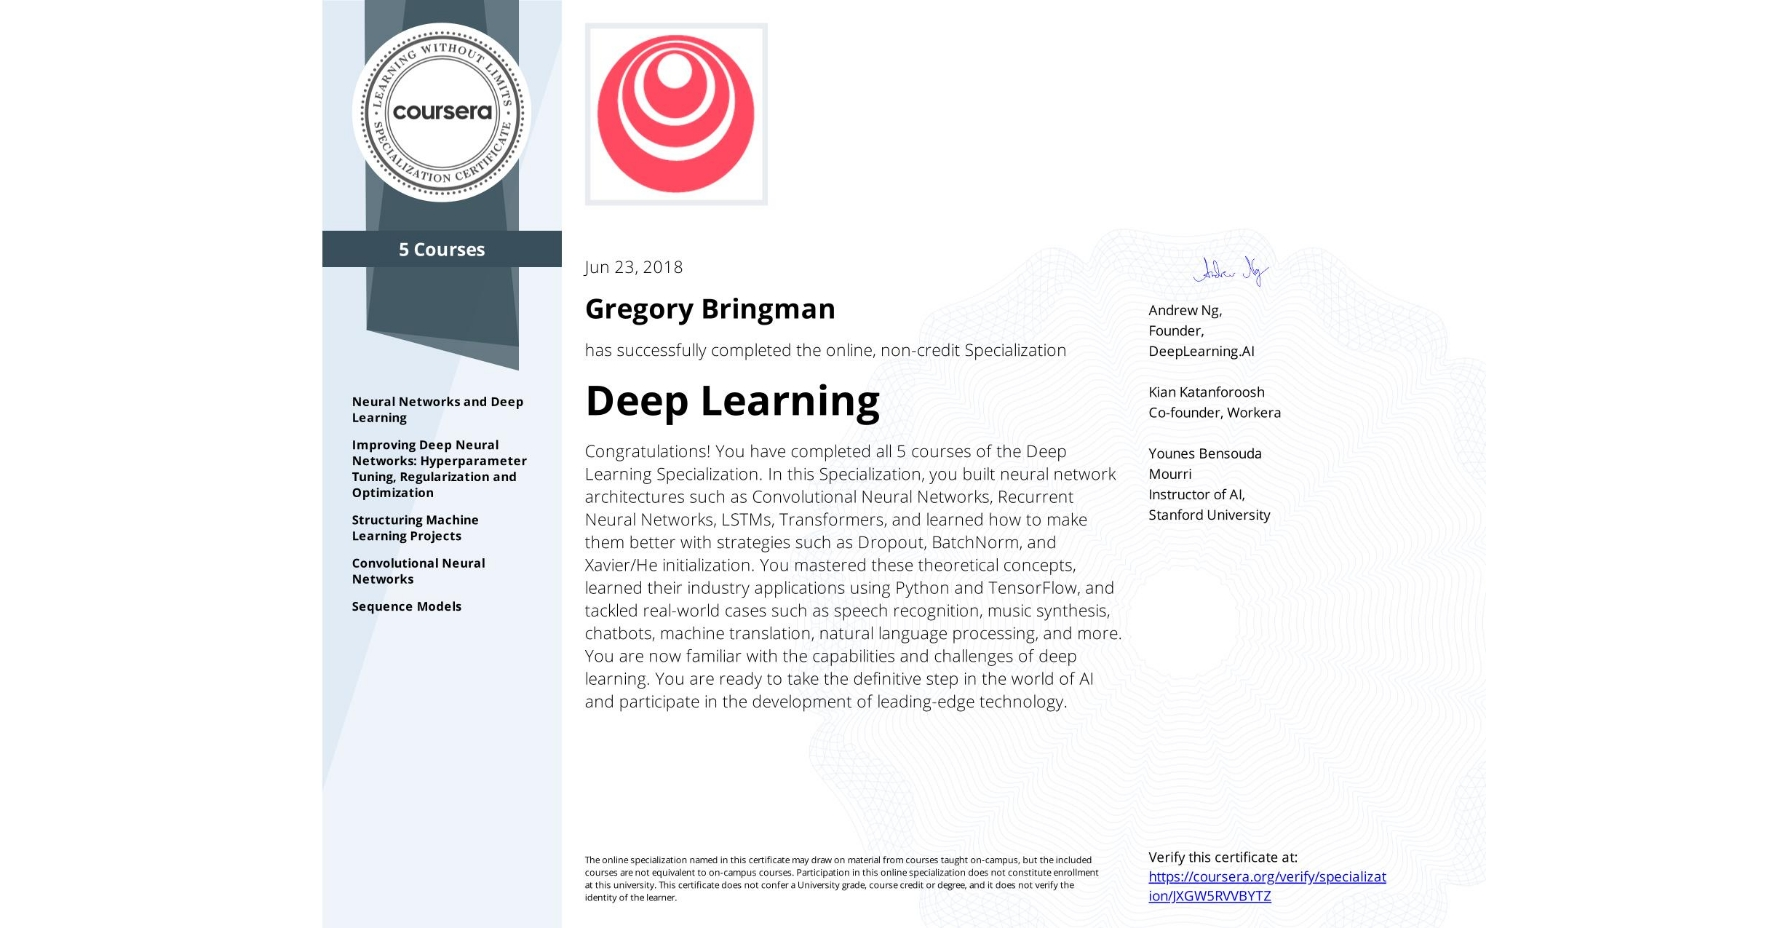 View certificate for Gregory Bringman, Deep Learning, offered through Coursera. The Deep Learning Specialization is designed to prepare learners to participate in the development of cutting-edge AI technology, and to understand the capability, the challenges, and the consequences of the rise of deep learning. Through five interconnected courses, learners develop a profound knowledge of the hottest AI algorithms, mastering deep learning from its foundations (neural networks) to its industry applications (Computer Vision, Natural Language Processing, Speech Recognition, etc.).